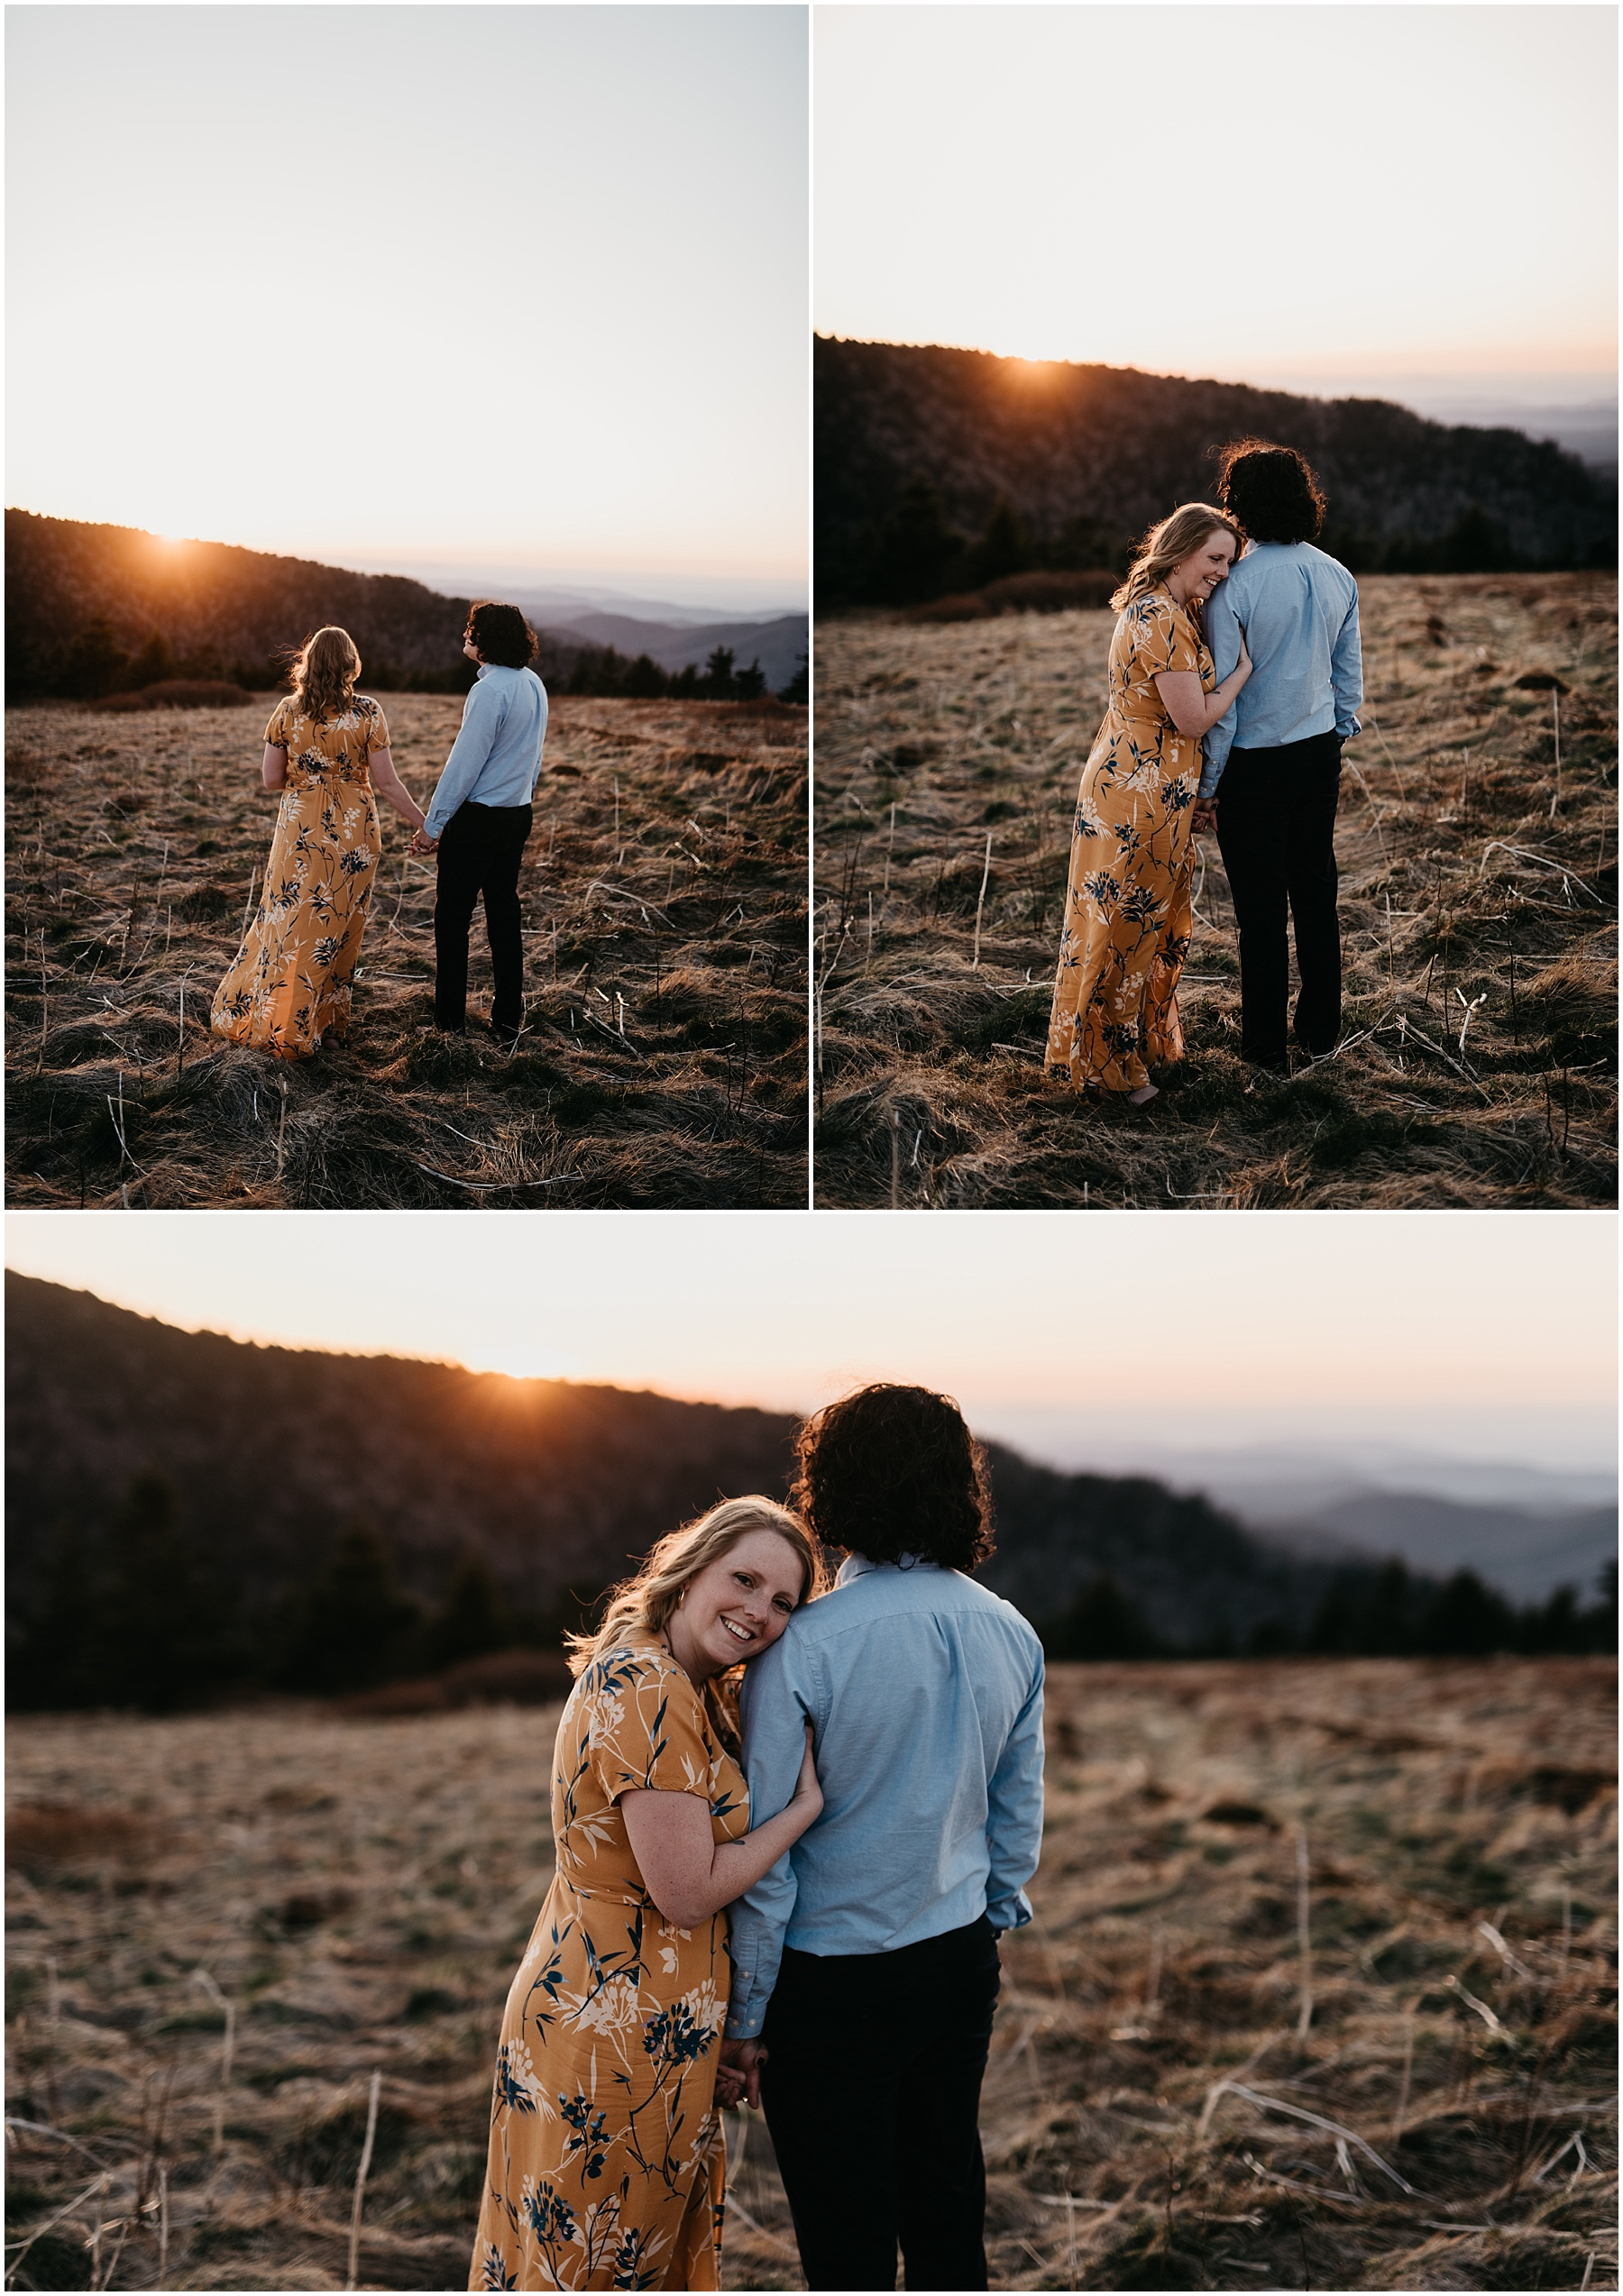 Boone_Engagement_Photographer_39.jpg